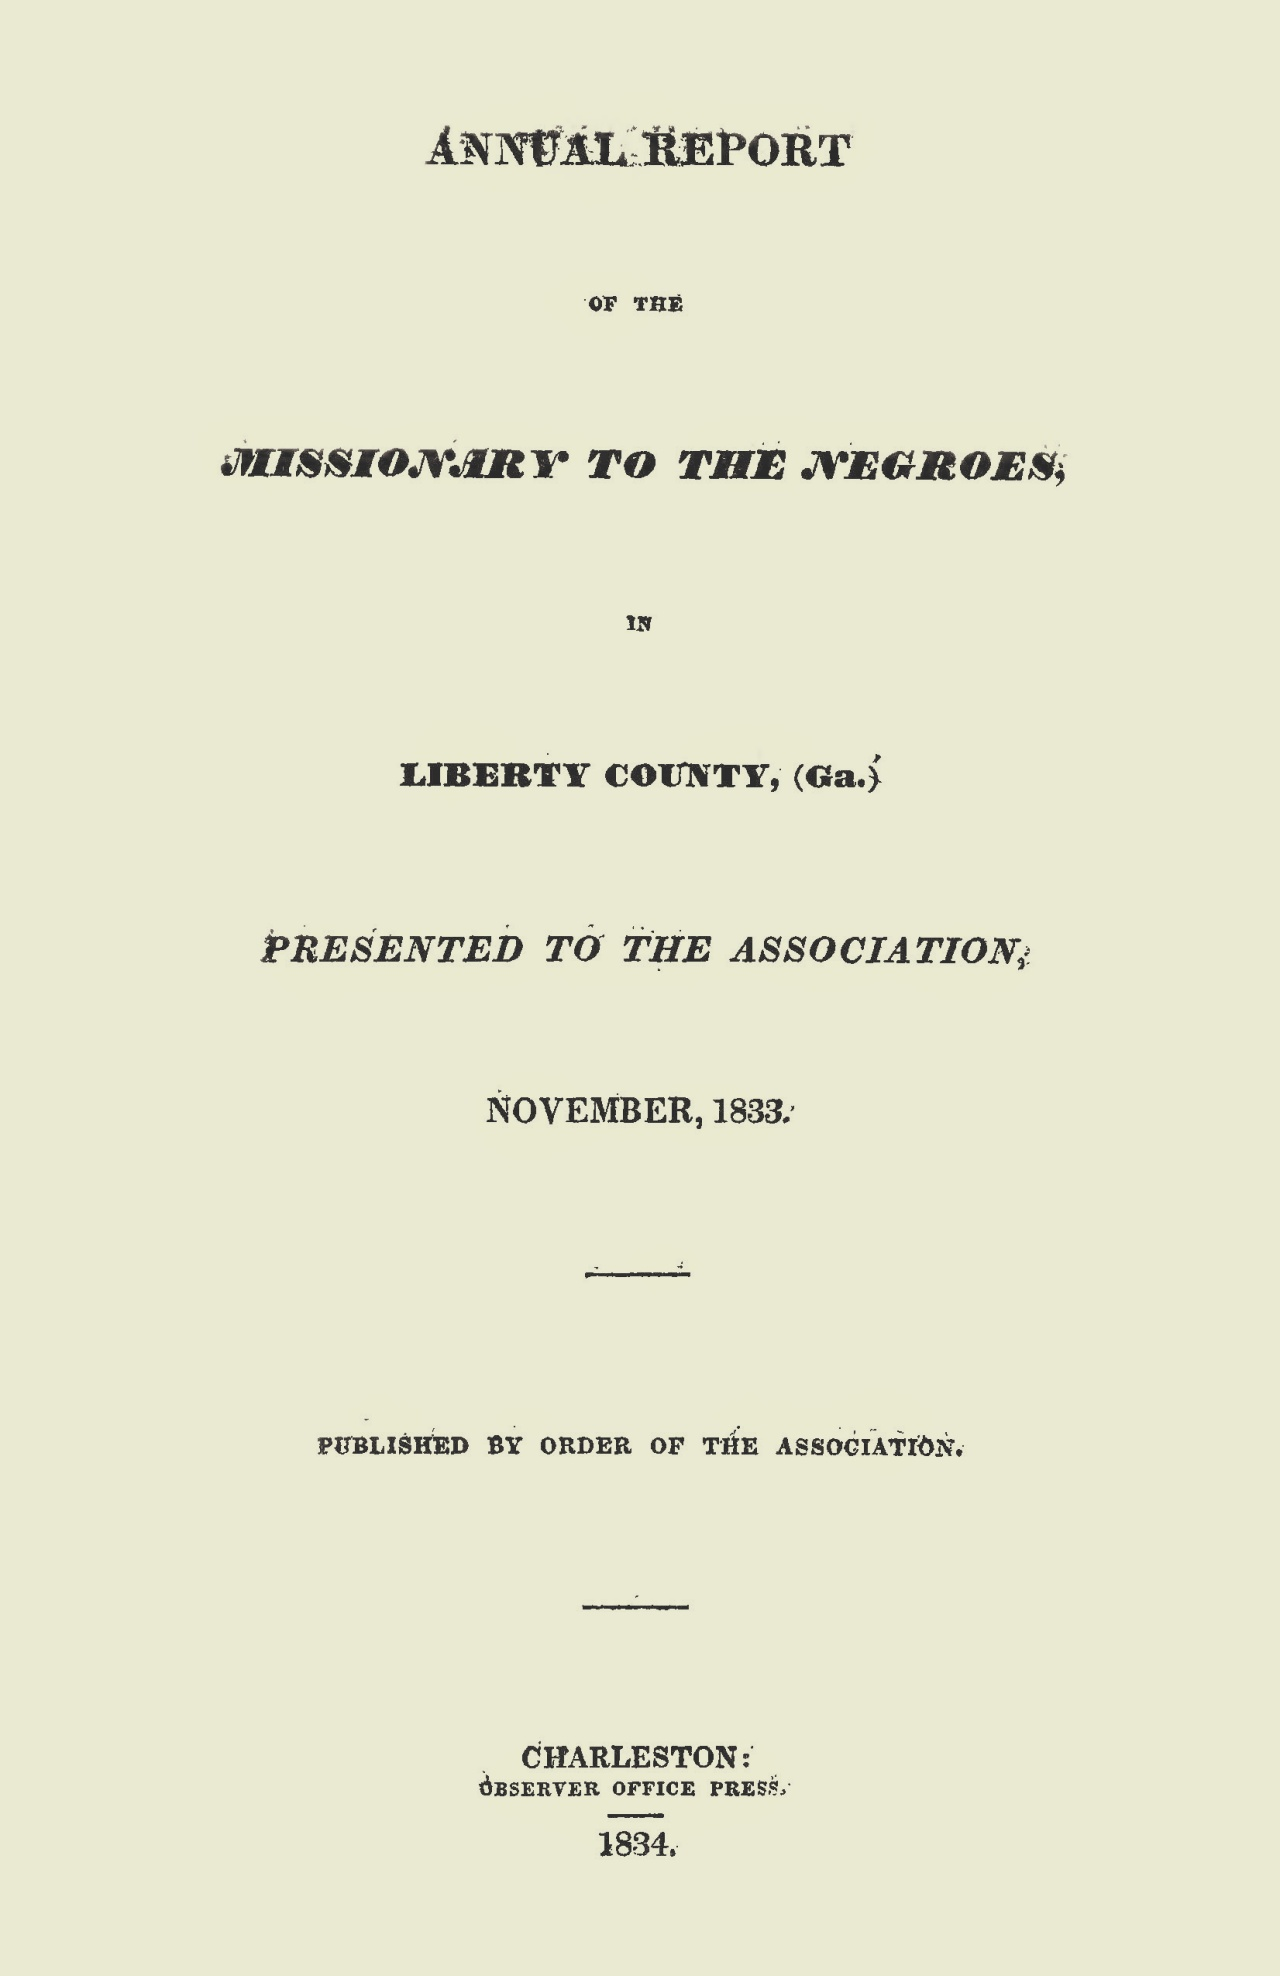 Jones, Sr., Charles Colcock, 1833 Annual Report of the Missionary Title Page.jpg